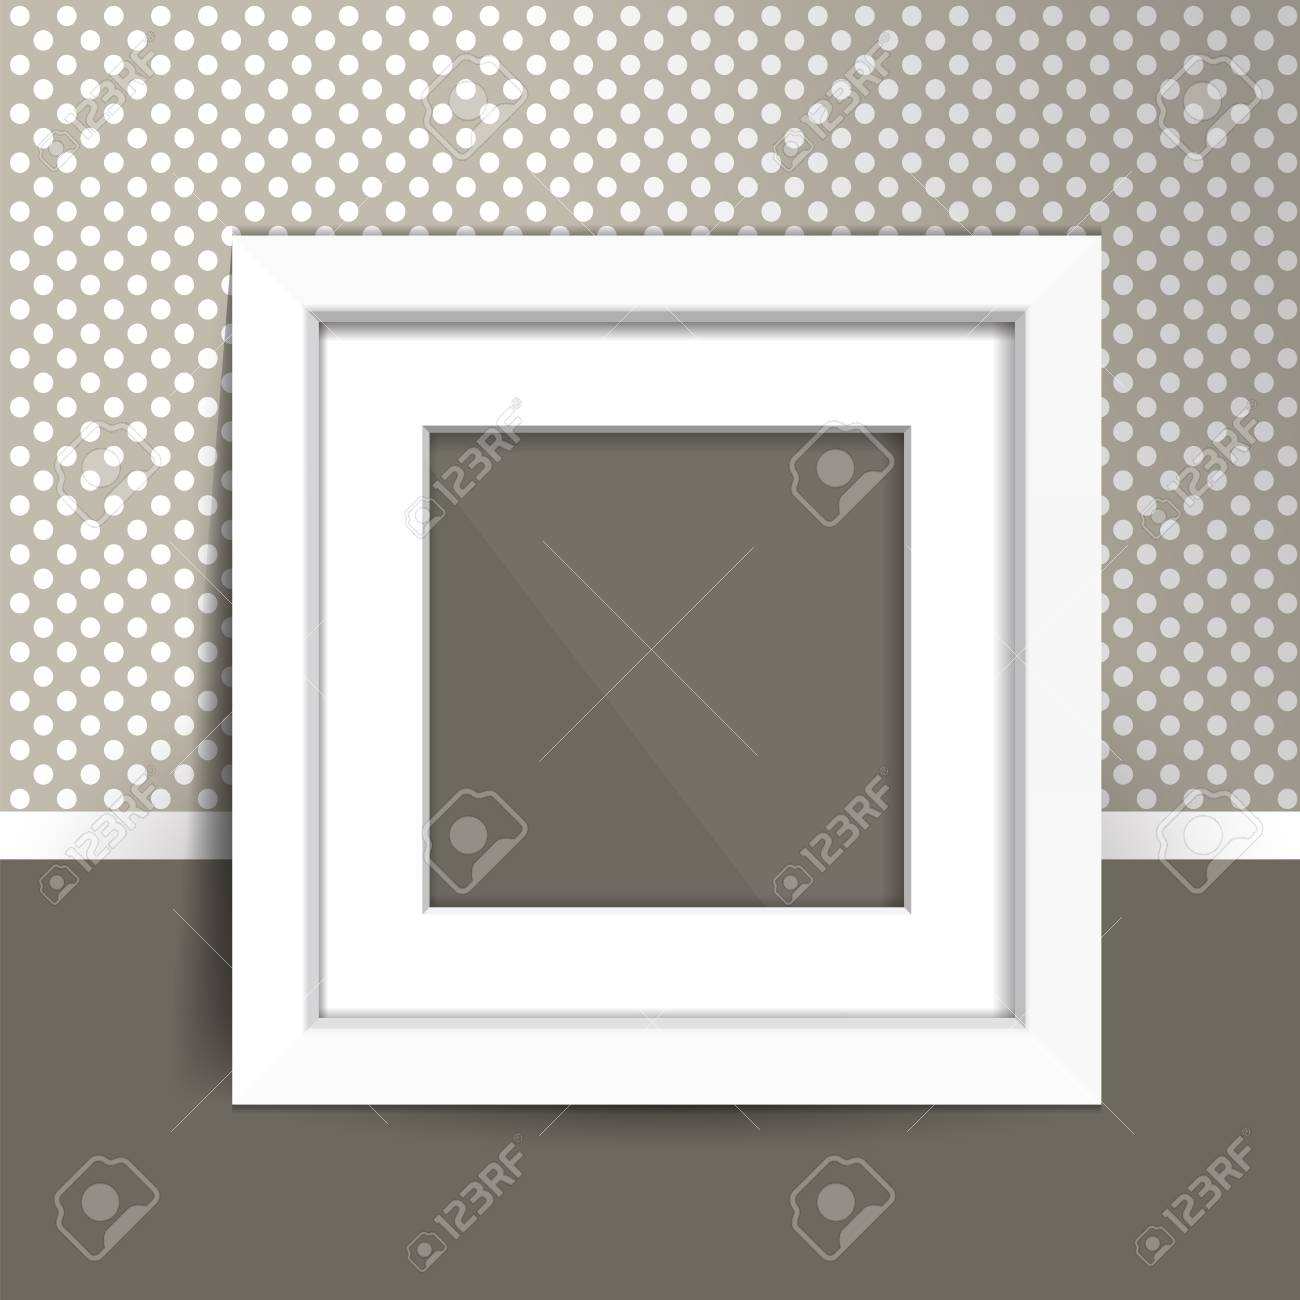 Photoframe Mock Up On The Wall. Simple White Empty Framing. Template ...